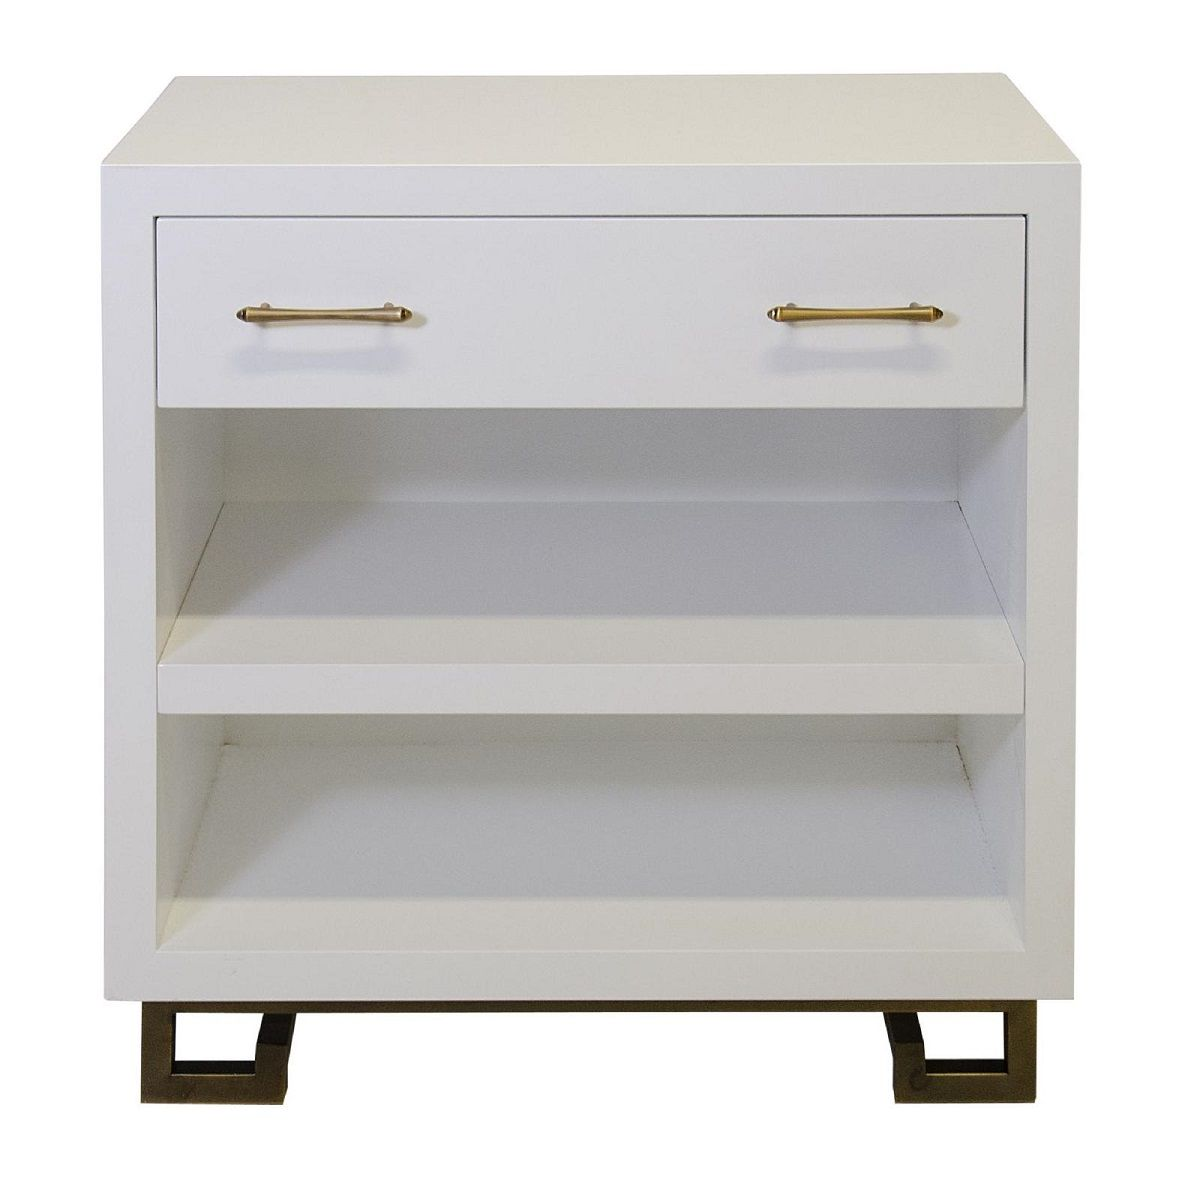 $1700 Contemporary White Nightstand * 1 Drawer, Open Shelving, High Gloss  Lacquer, Brass